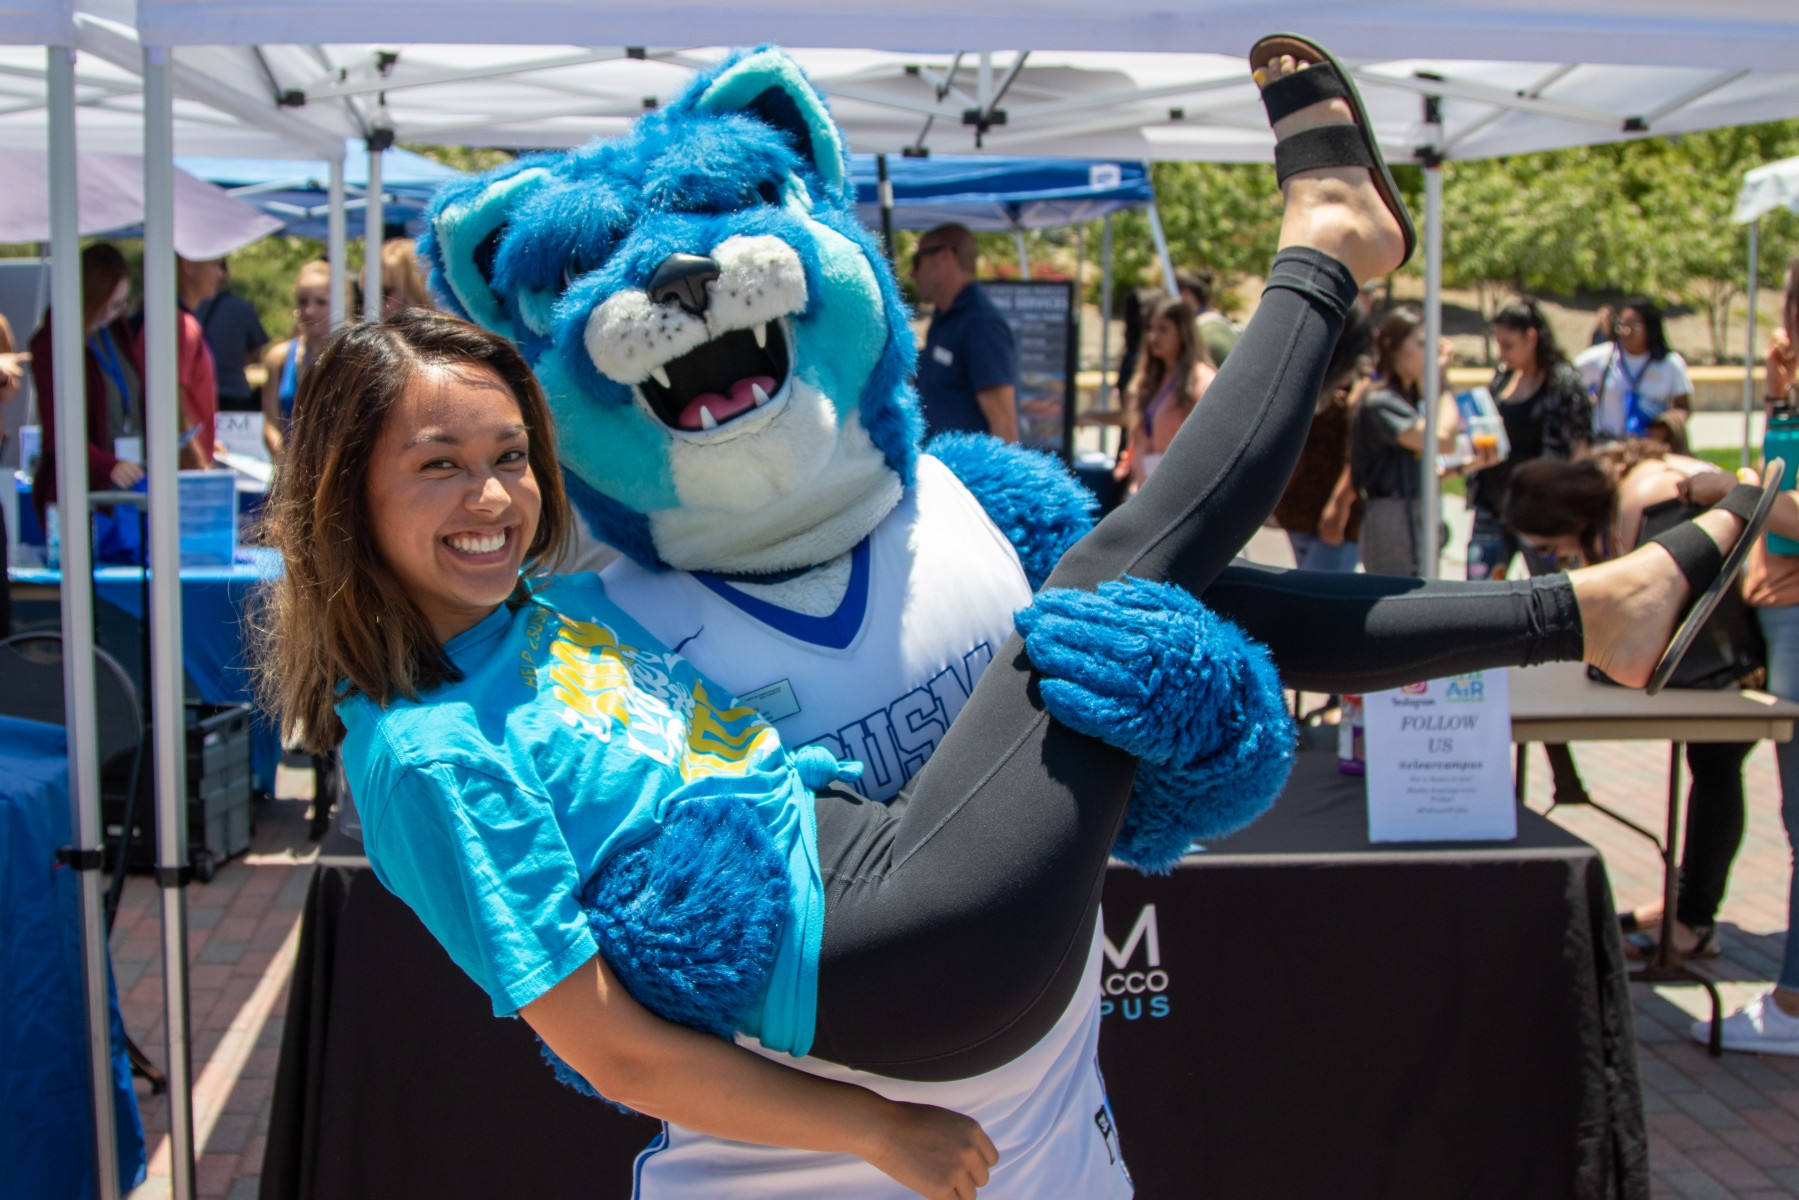 Ashley Reyes, CSUSM's Clear the Air student coordinator, attended on-campus orientations throughout the summer to help educate incoming freshmen and transfer students about the university's smoke- and tobacco-free policy.